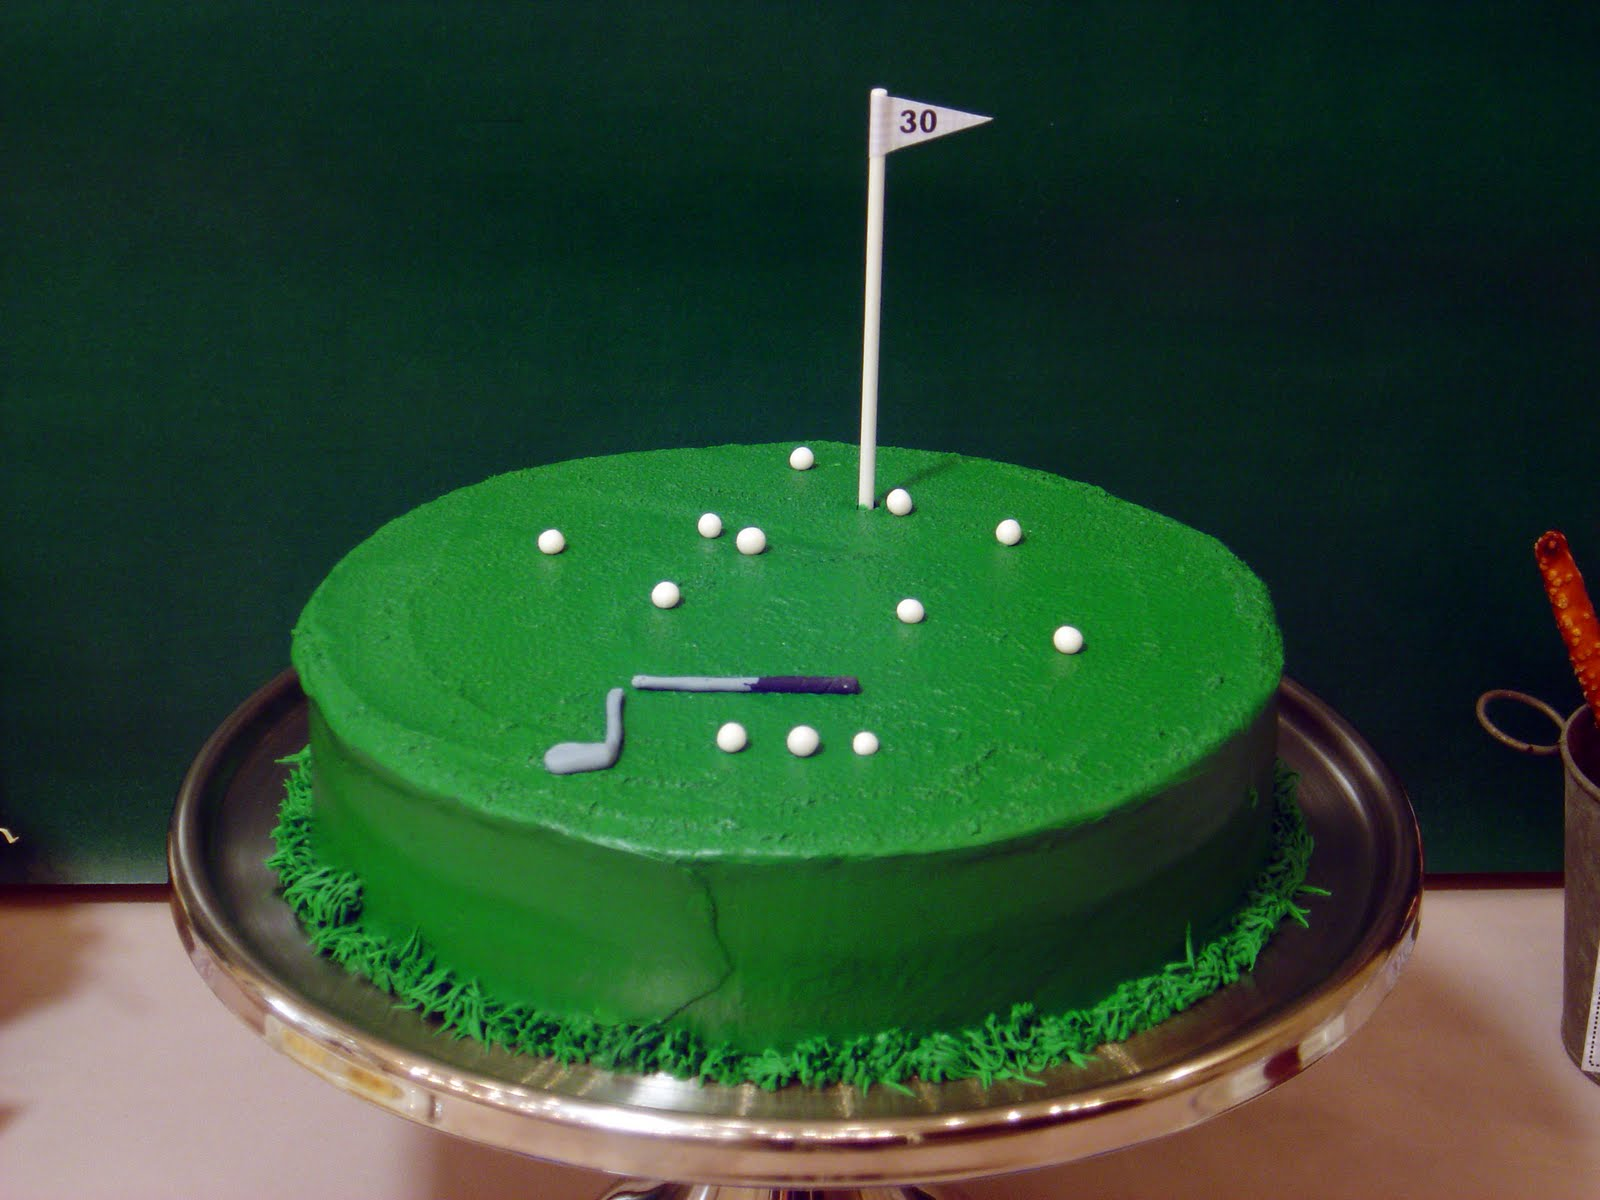 GOLF GIRL S DIARY: Top 10 Golf Cakes - Creative ...